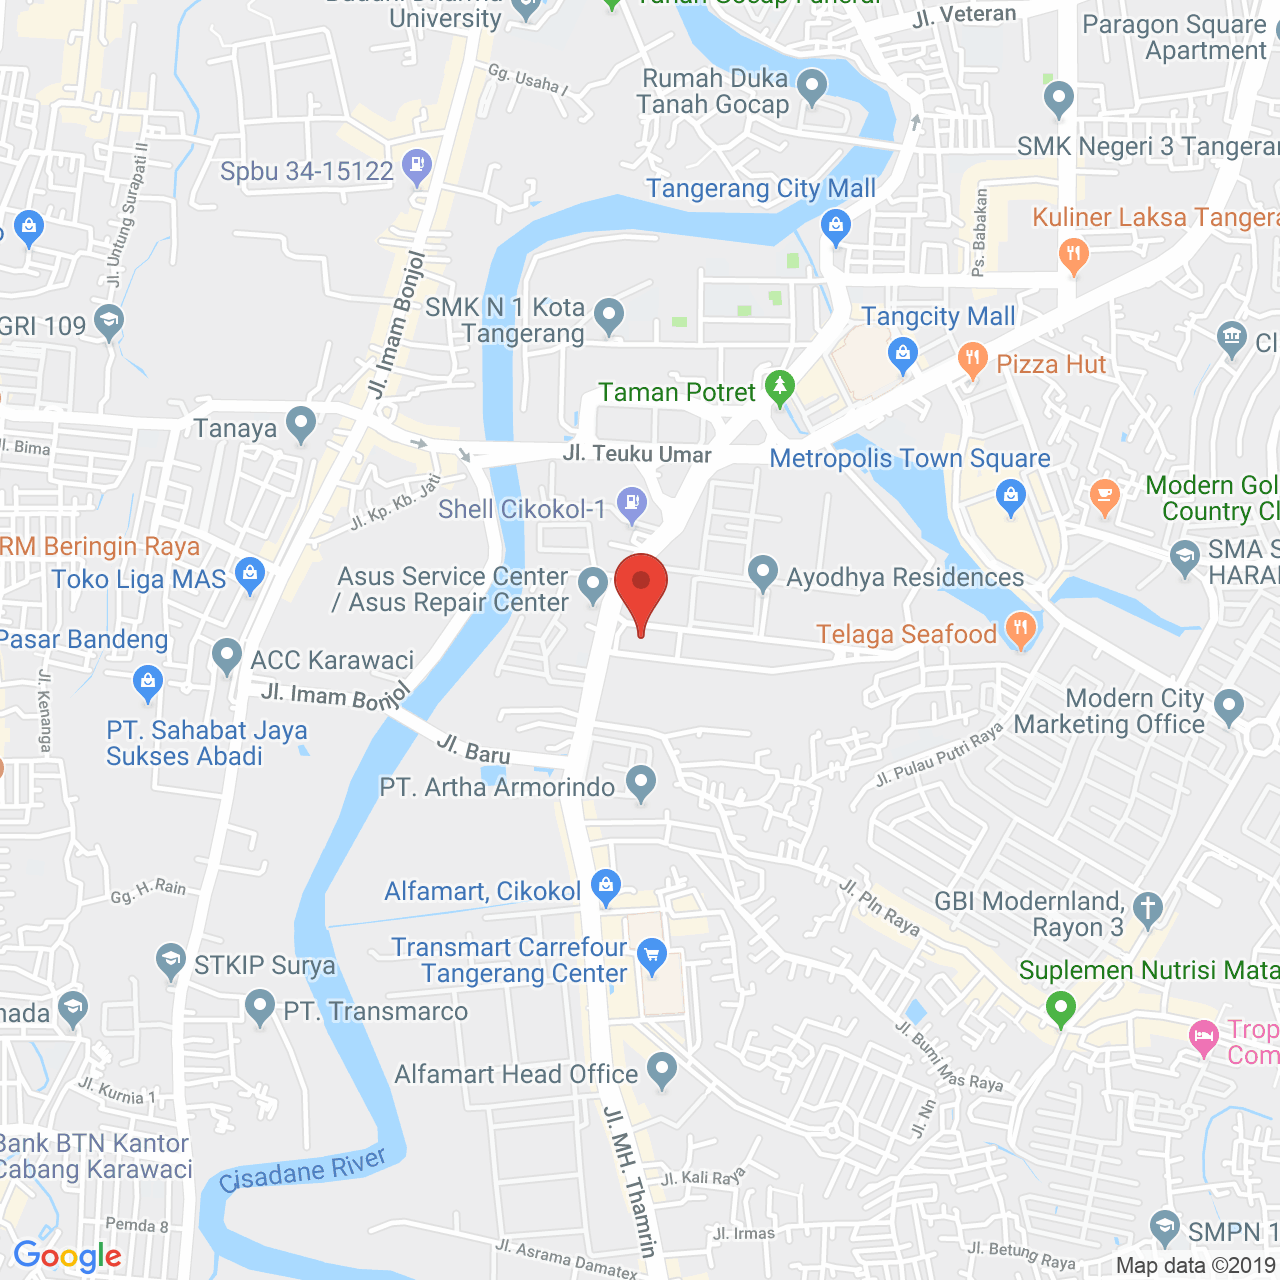 Kota Ayodhya Apartment Map